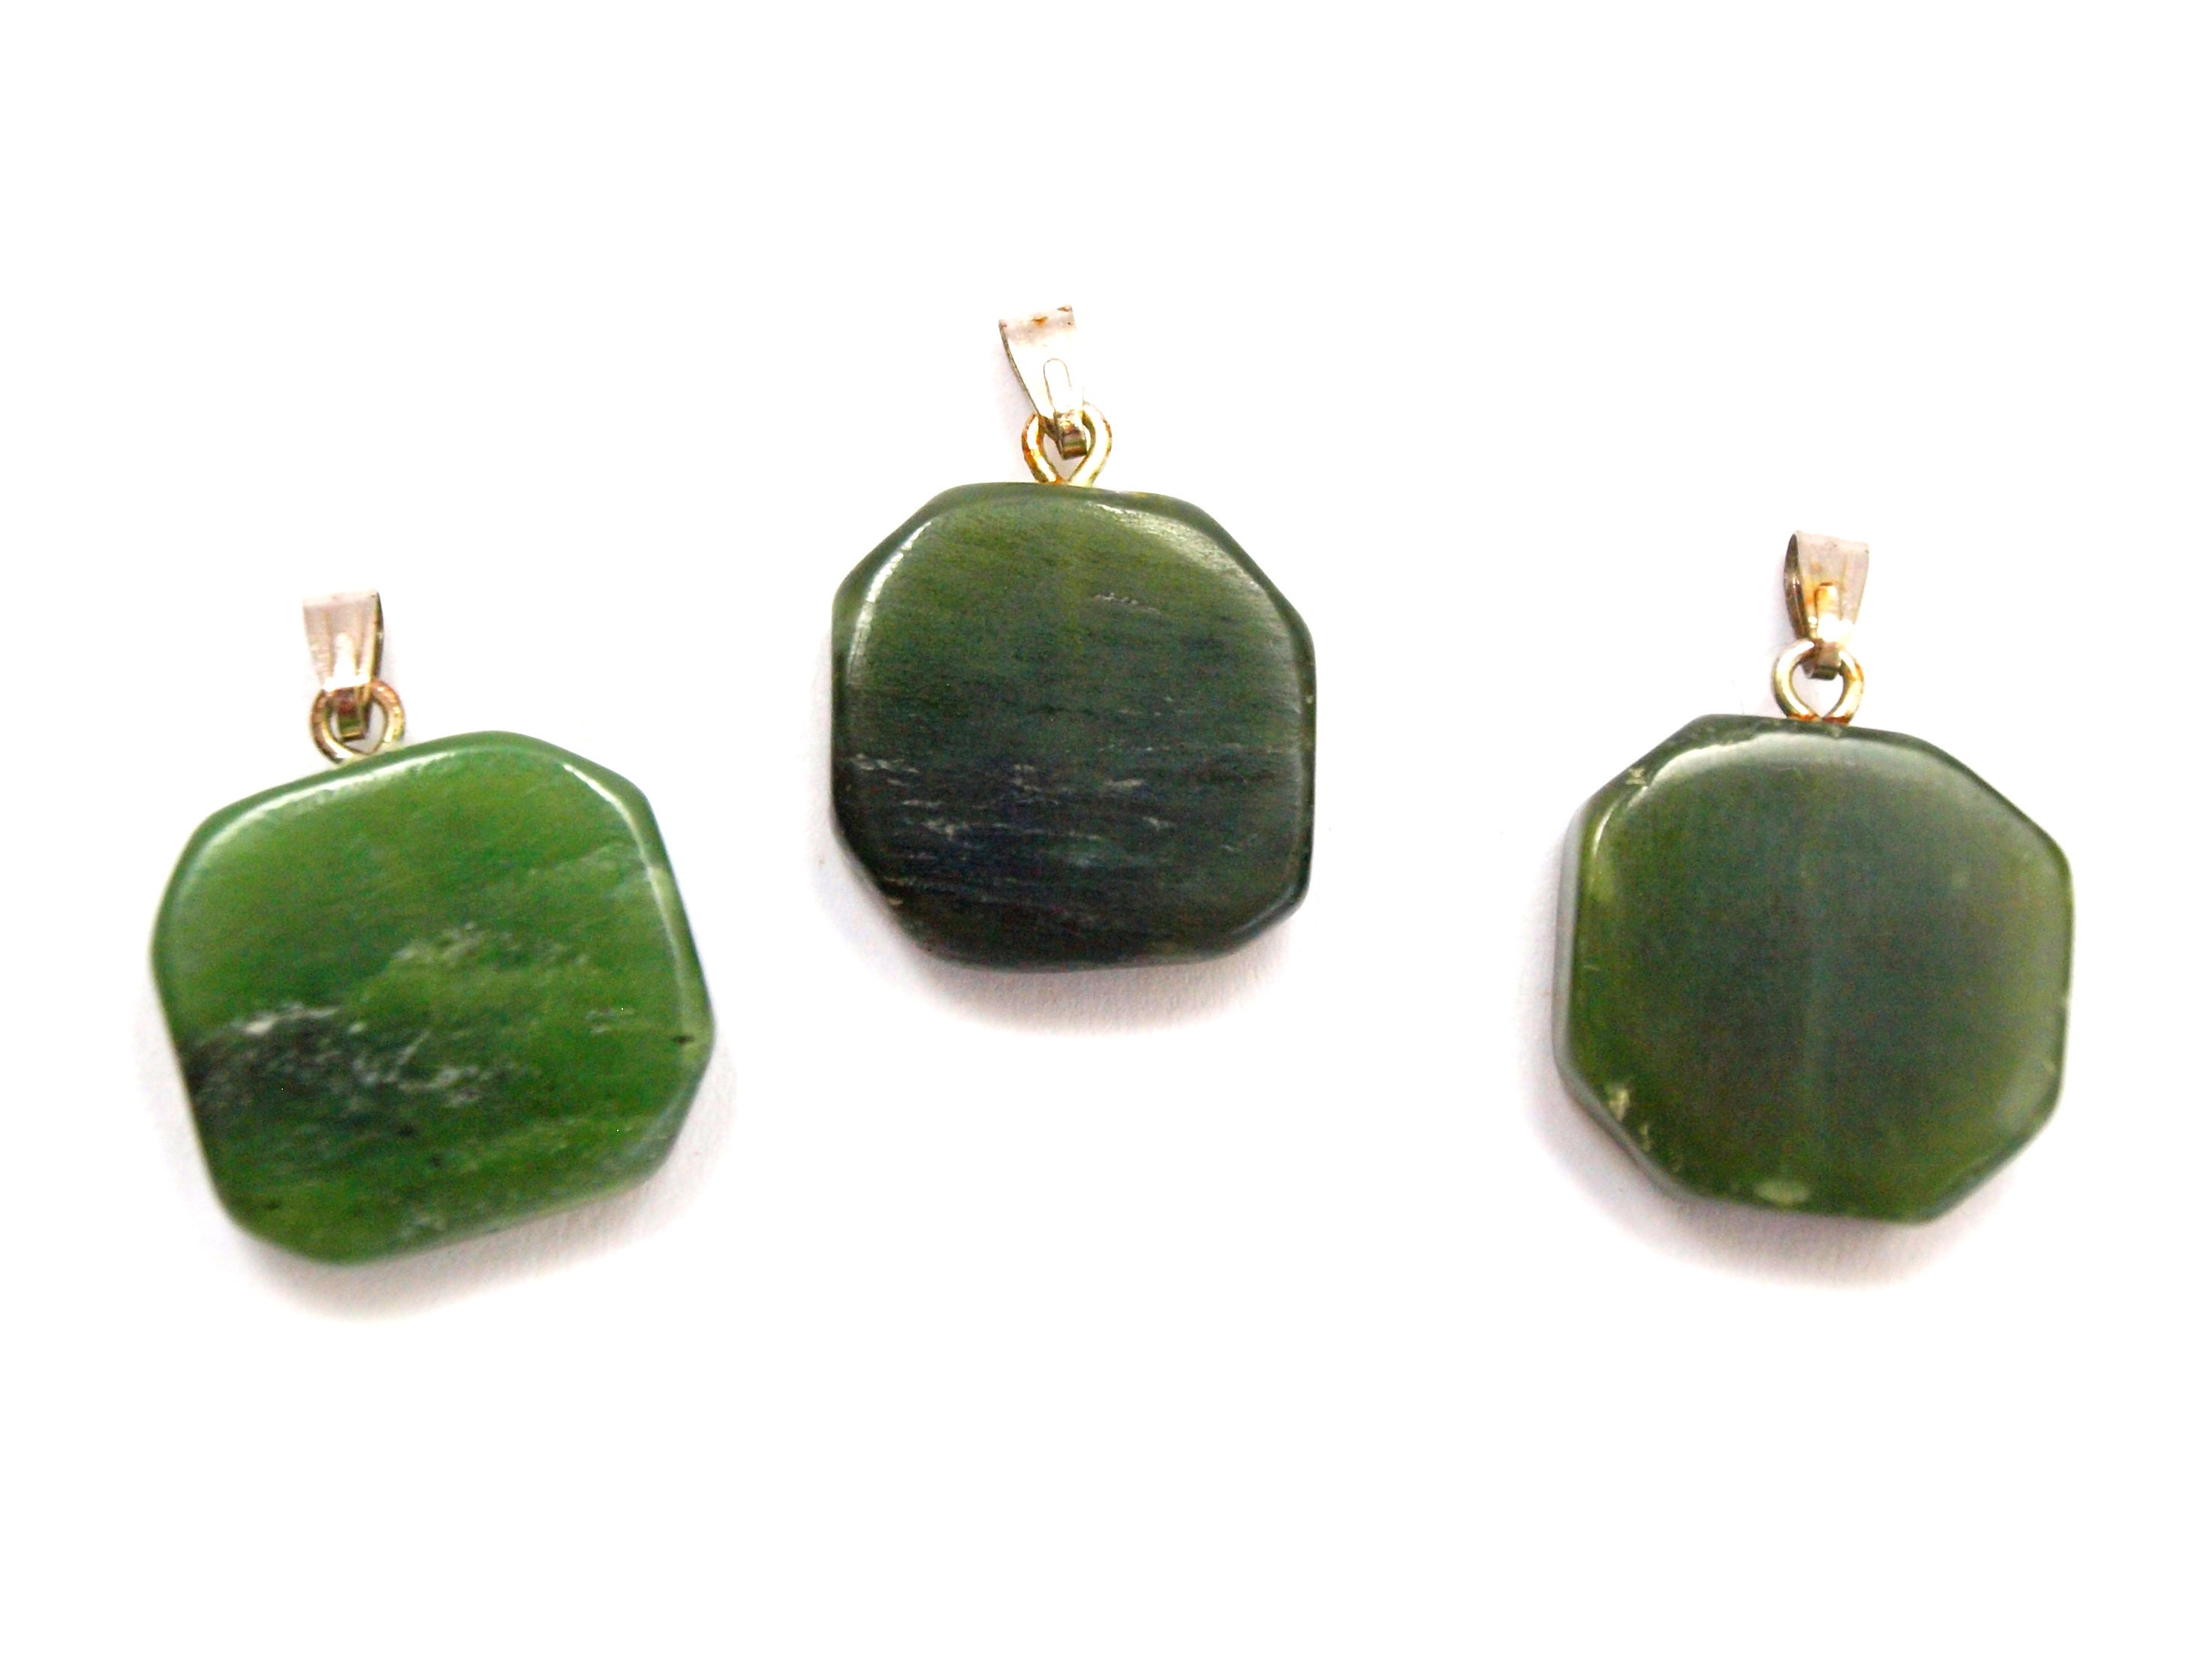 by pendant hongshan etsy jade carved old on necklace culture amulet chinese hand luvzit pin